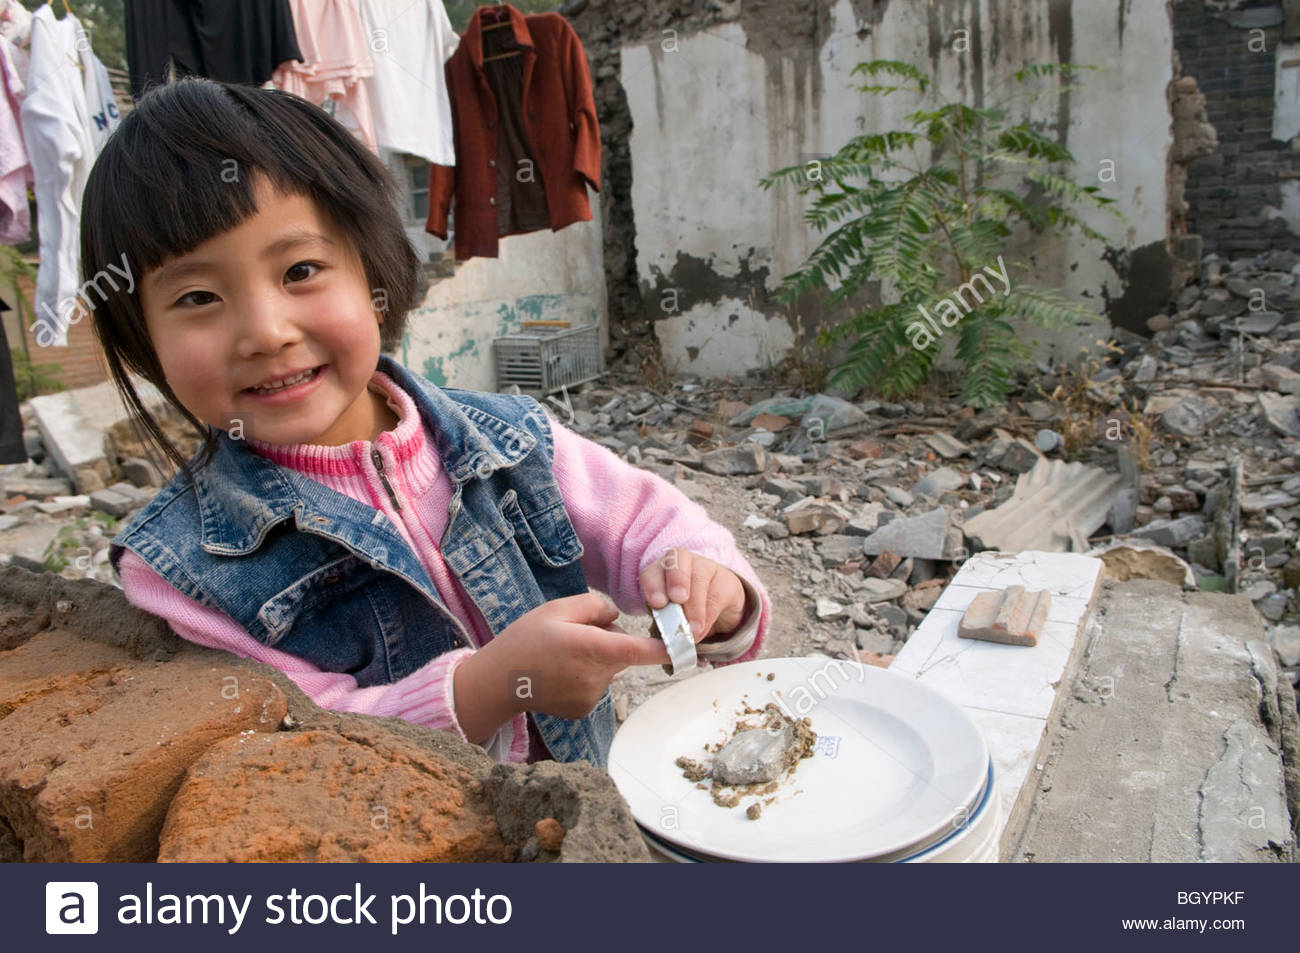 A young girl plays in the courtyard of a demolished hutong in Beijing China - Stock Image